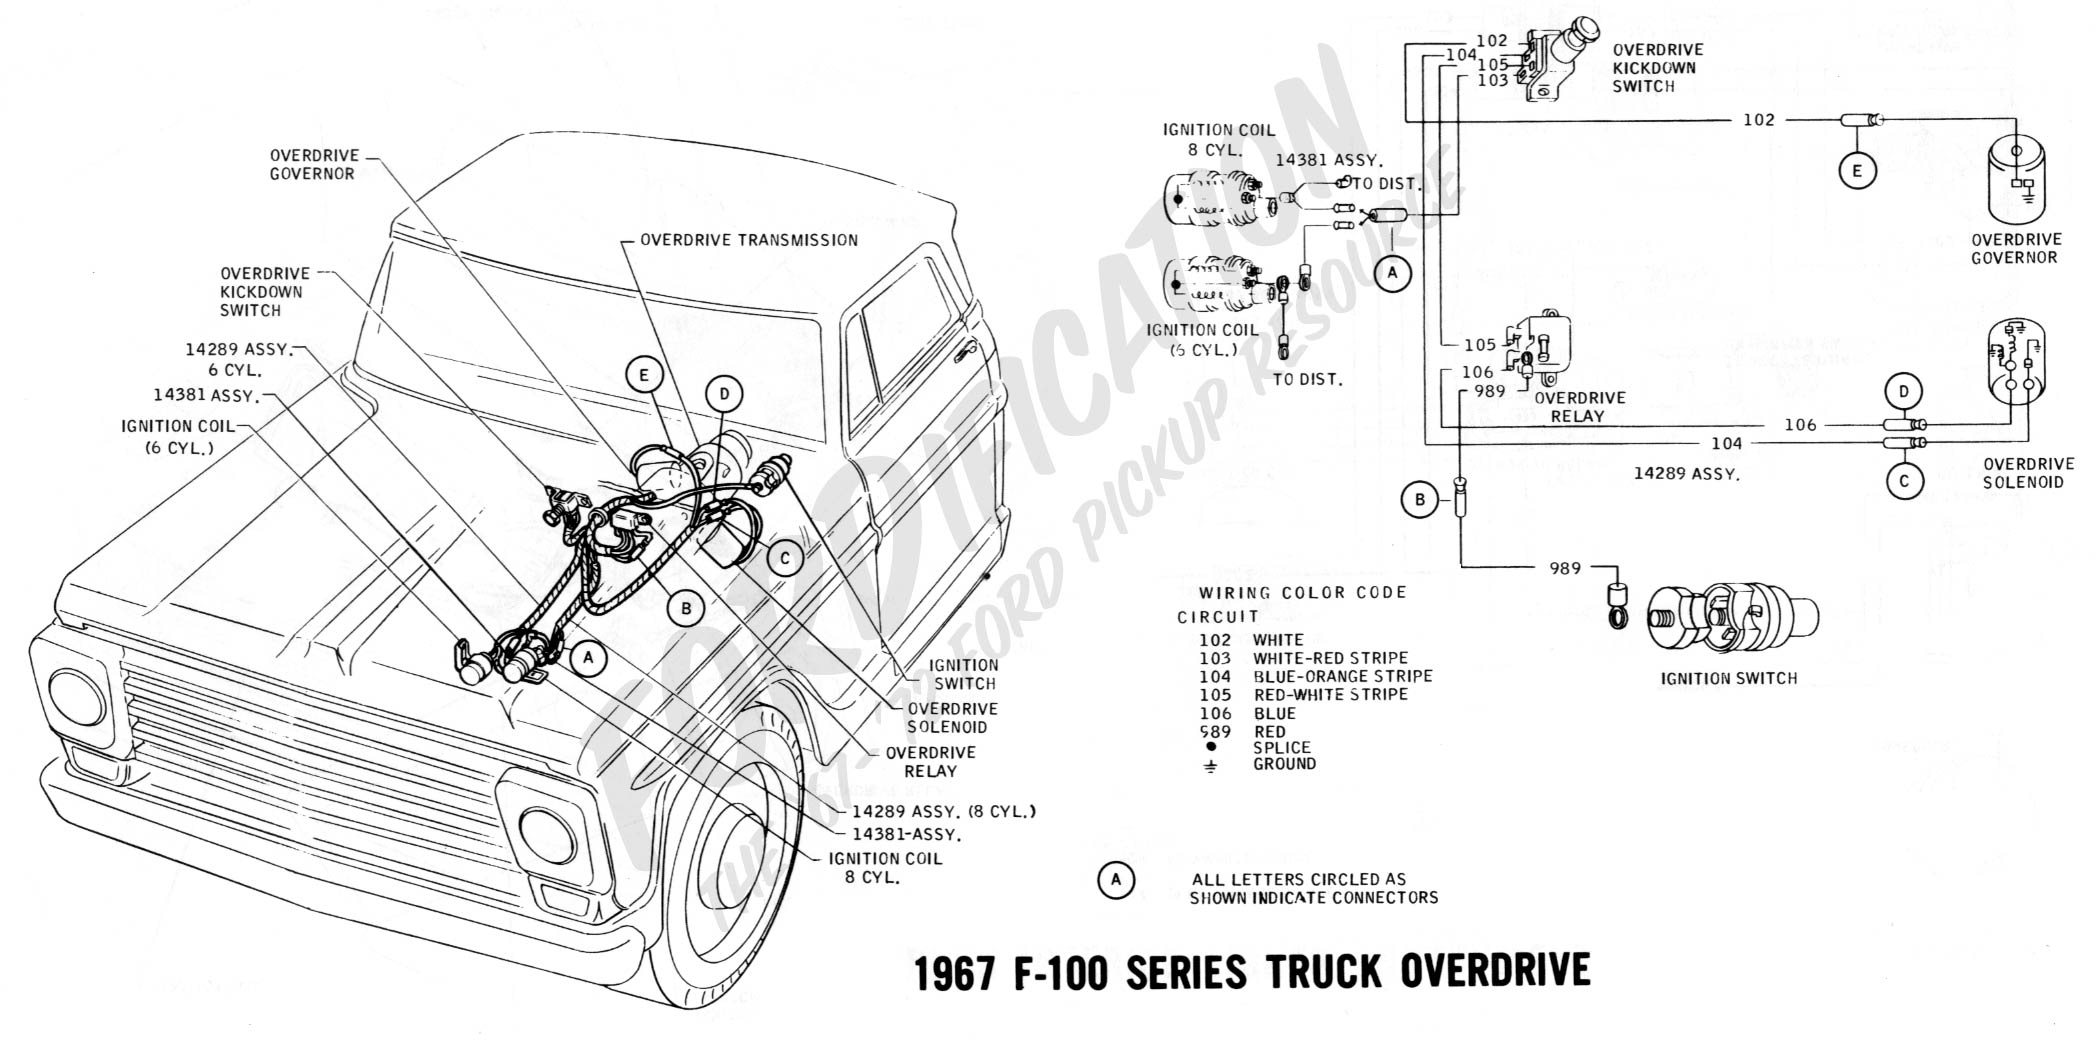 68 Ford F100 Fuse Box - Schematics Wiring Diagrams • Wiring Diagram For Ford F on 1978 ford truck wiring diagram, 56 ford truck wiring diagram, 1973 ford wiring diagram, 1976 ford ignition wiring diagram, ford ignition switch wiring diagram, 1979 ford f-150 wiring diagram, 65 ford pickup 4x4, 65 ford truck parts, 65 chevelle wiring diagram, ford tractor starter solenoid wiring diagram, 1953 ford wiring diagram, 1966 ford wiring diagram, 65 ford f-250, 1954 ford wiring diagram, 1968 ford f-250 wiring diagram, 65 mustang engine diagram, 65 ford steering column wiring, ford f150 wiring diagram, 1957 ford wiring diagram, 1965 ford wiring diagram,